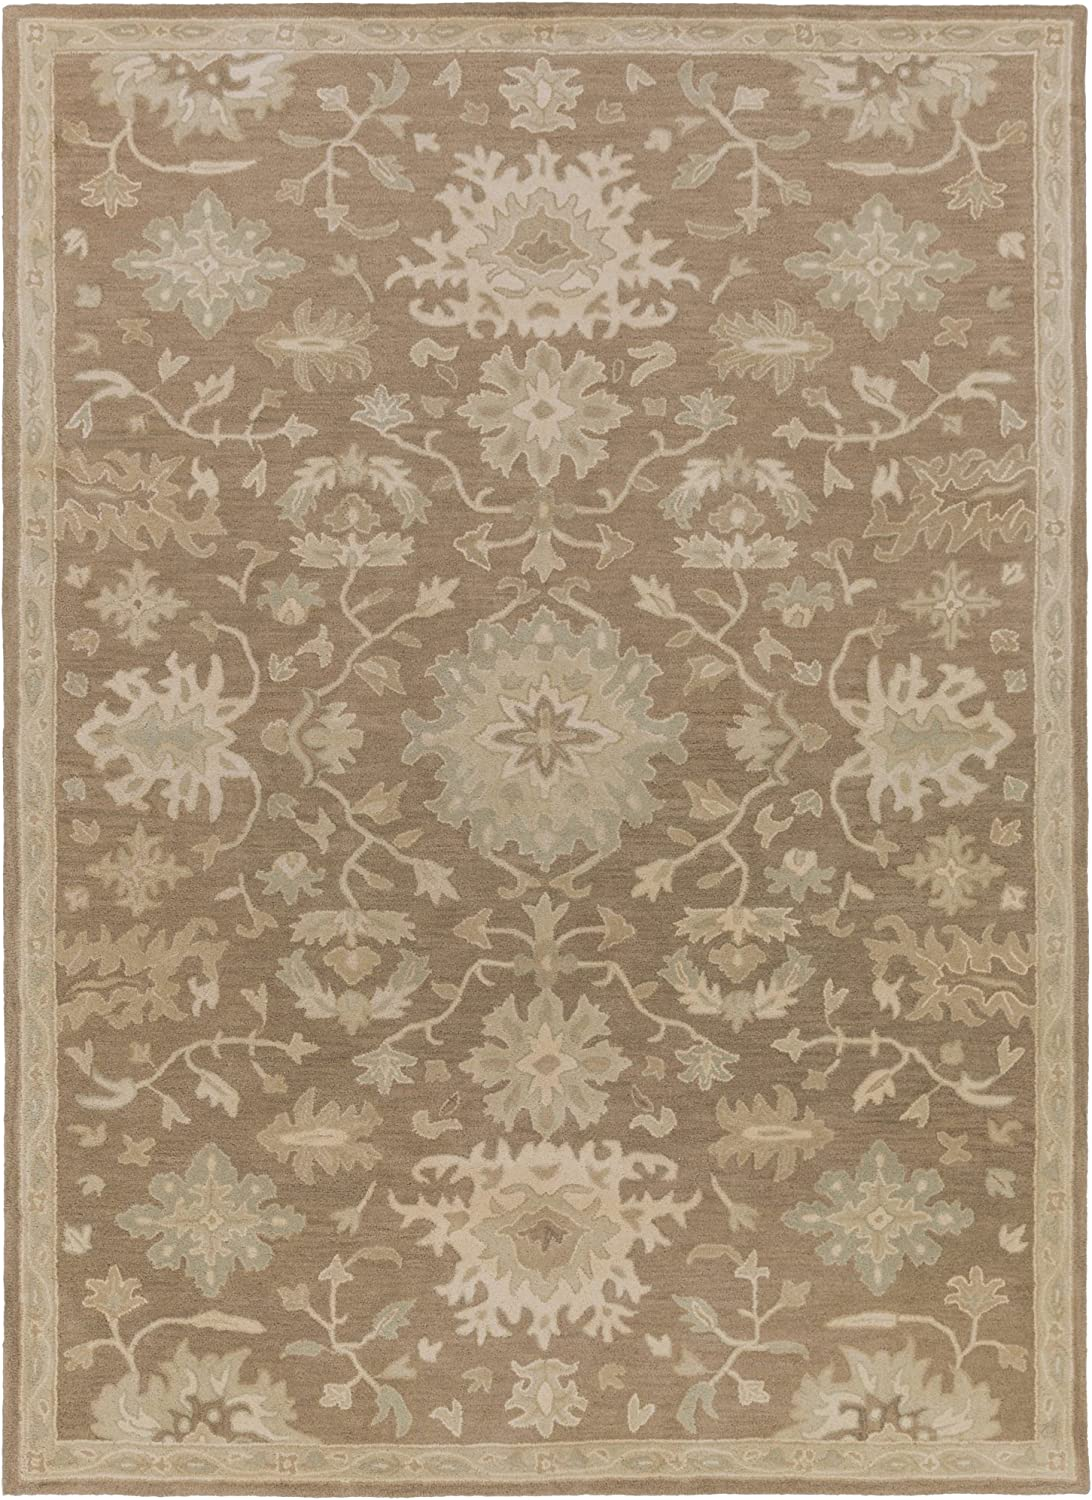 Amazon Com Surya Caesar Hand Tufted Classic Area Rug 12 Feet By 15 Feet Furniture Decor